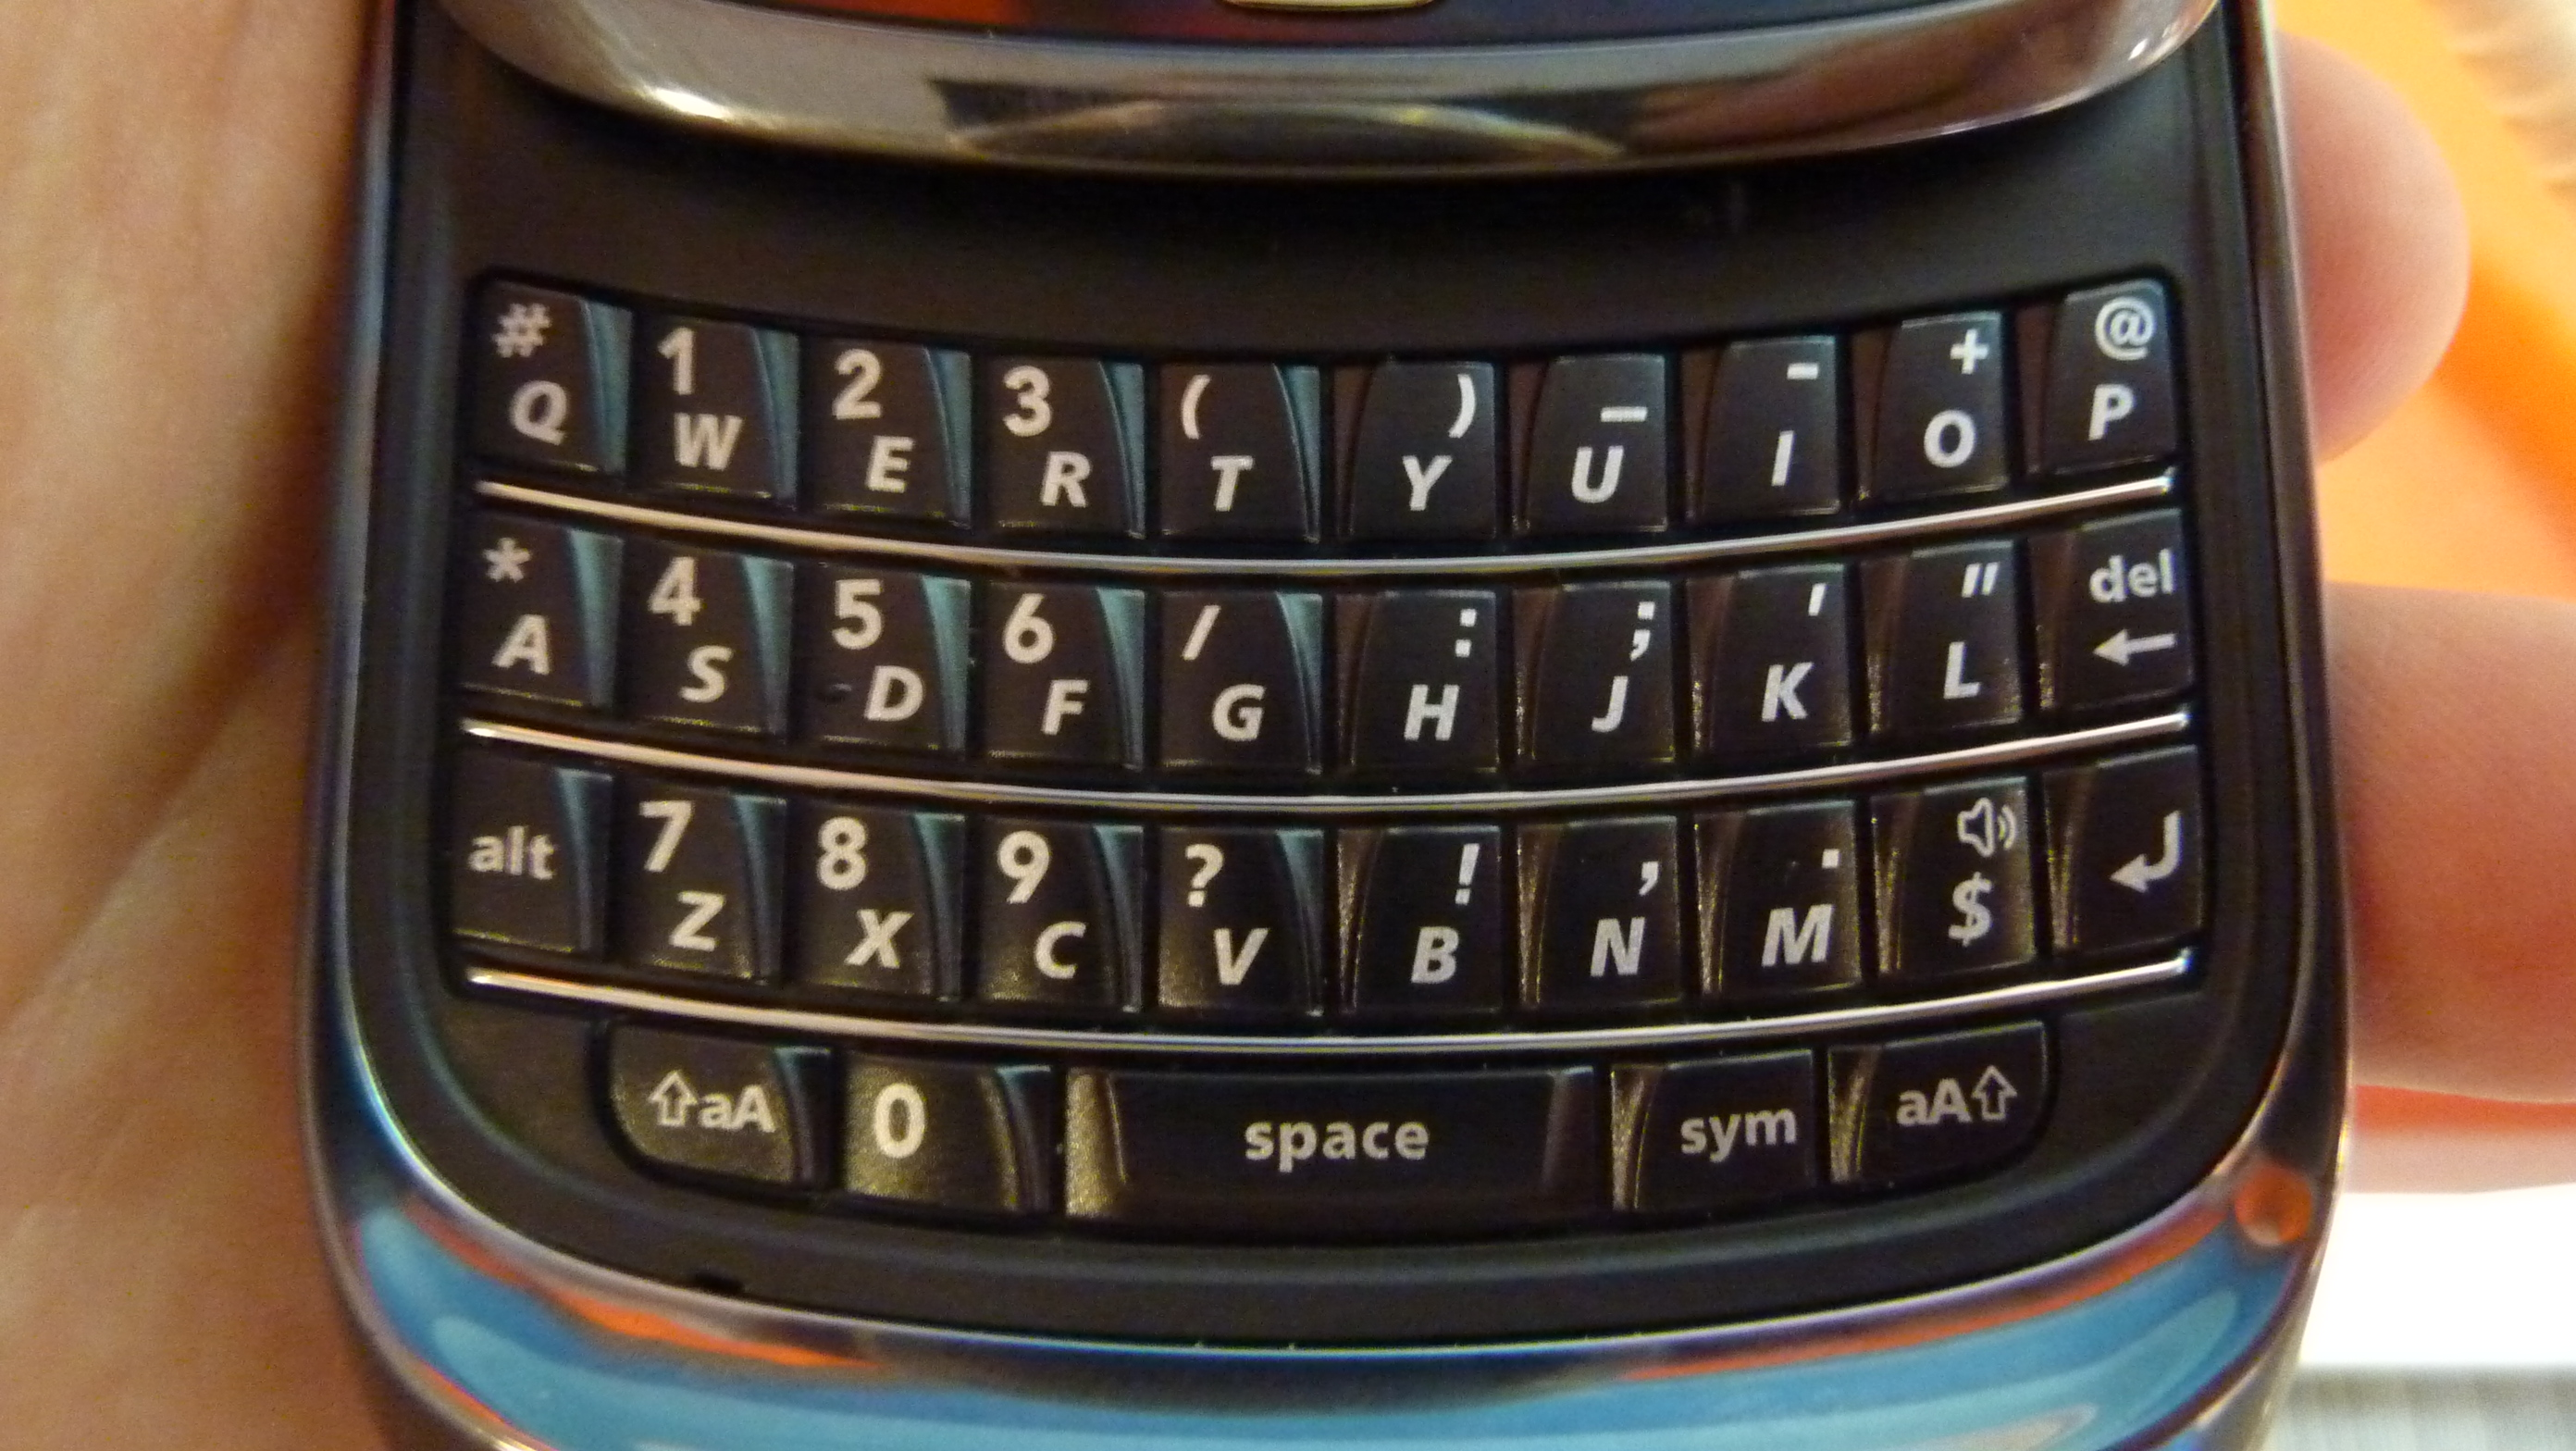 Hands-on with the BlackBerry Torch 9800 « TheONbutton Durham